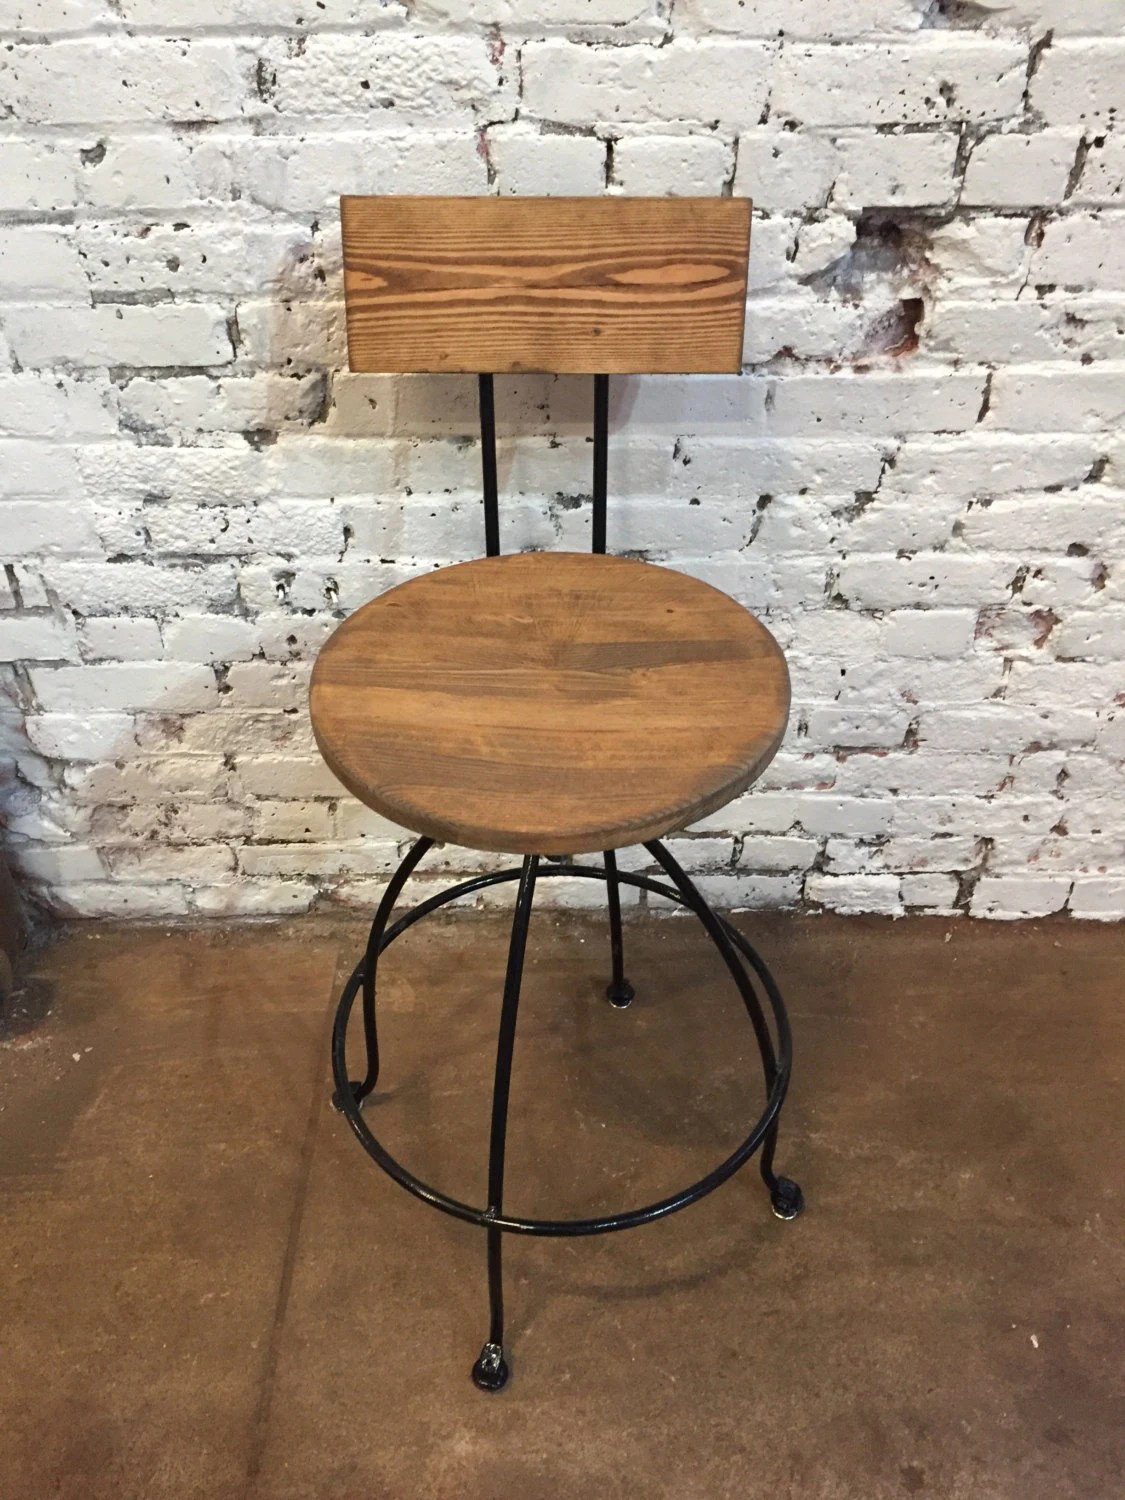 Kitchen Bar Stools On Sale Kitchen Bar Stools Swivel Bar Stools Steel Wood Counter Breakfast Bar Stools With Backs Best Seller